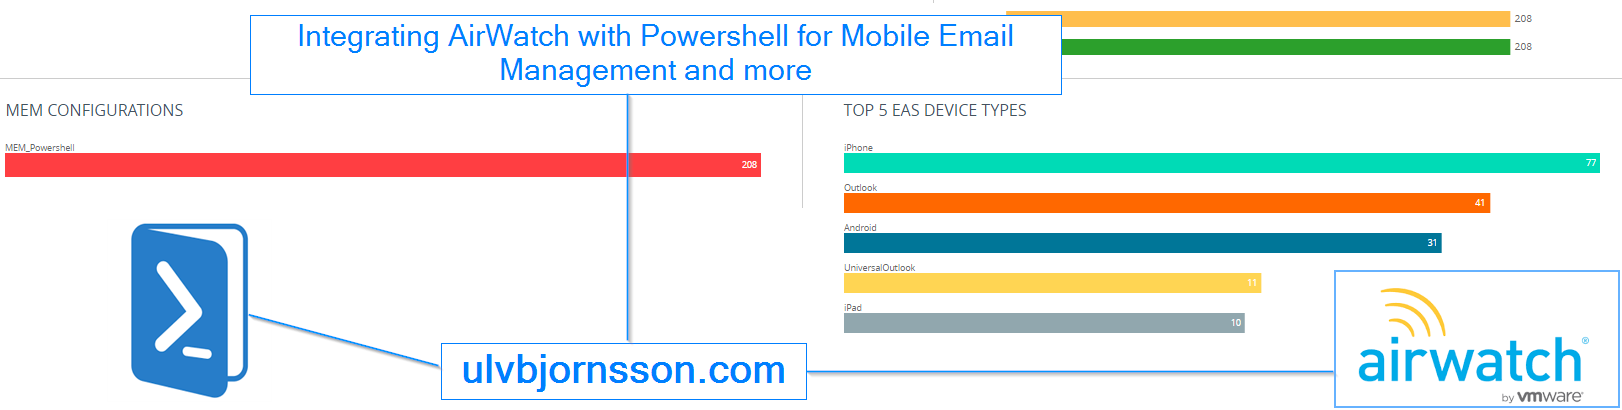 VMware AirWatch PowerShell Integration for Mobile Email